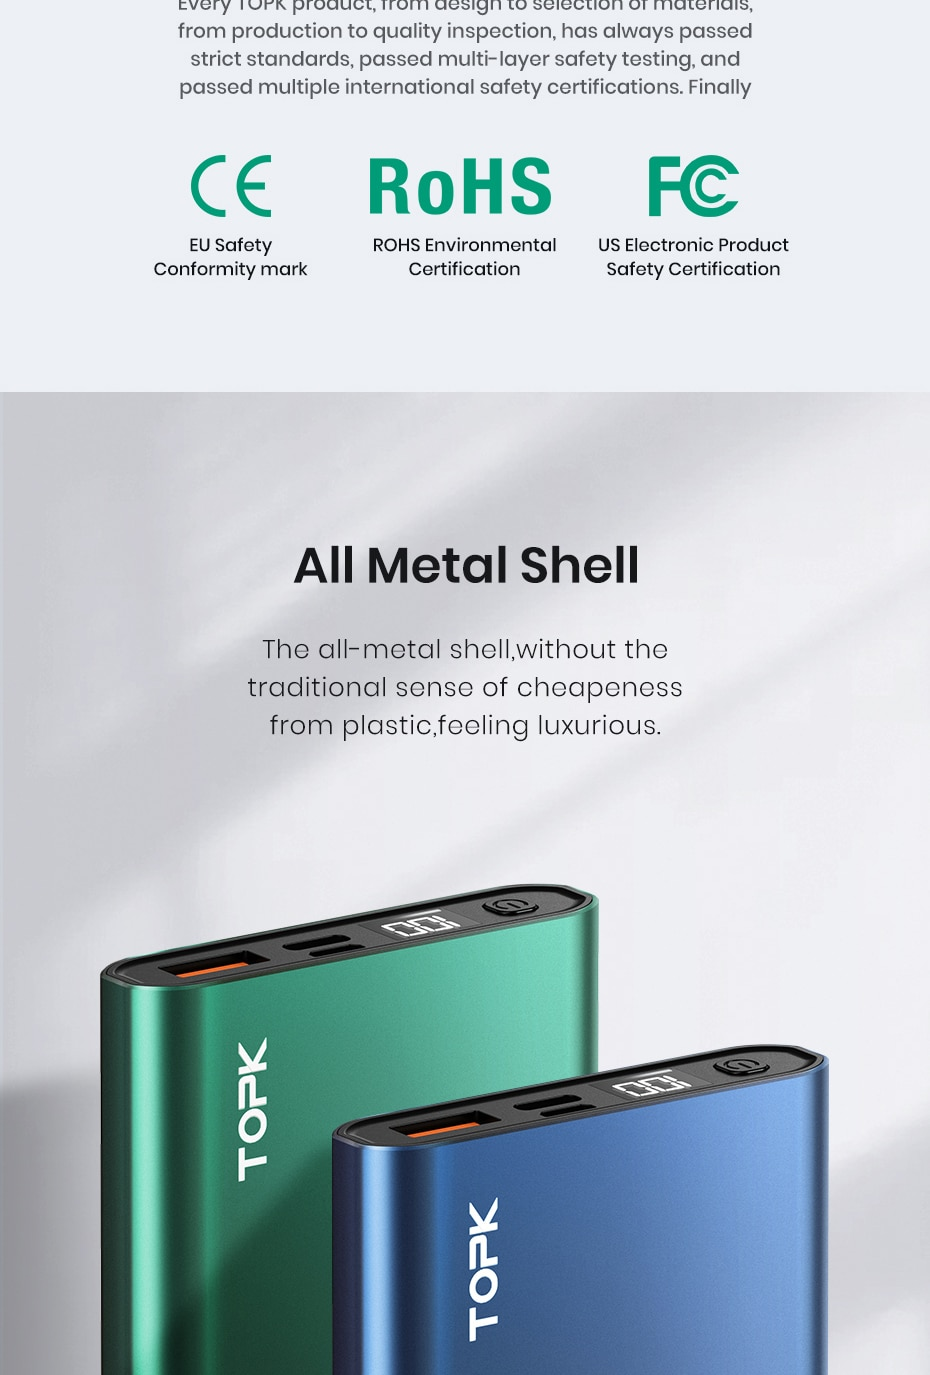 H63d65eafef4f4c5d850d9867f917faca2 - TOPK I1006P Power Bank 10000mAh Portable Charger LED External Battery PowerBank PD Two-way Fast Charging PoverBank for Xiaomi mi